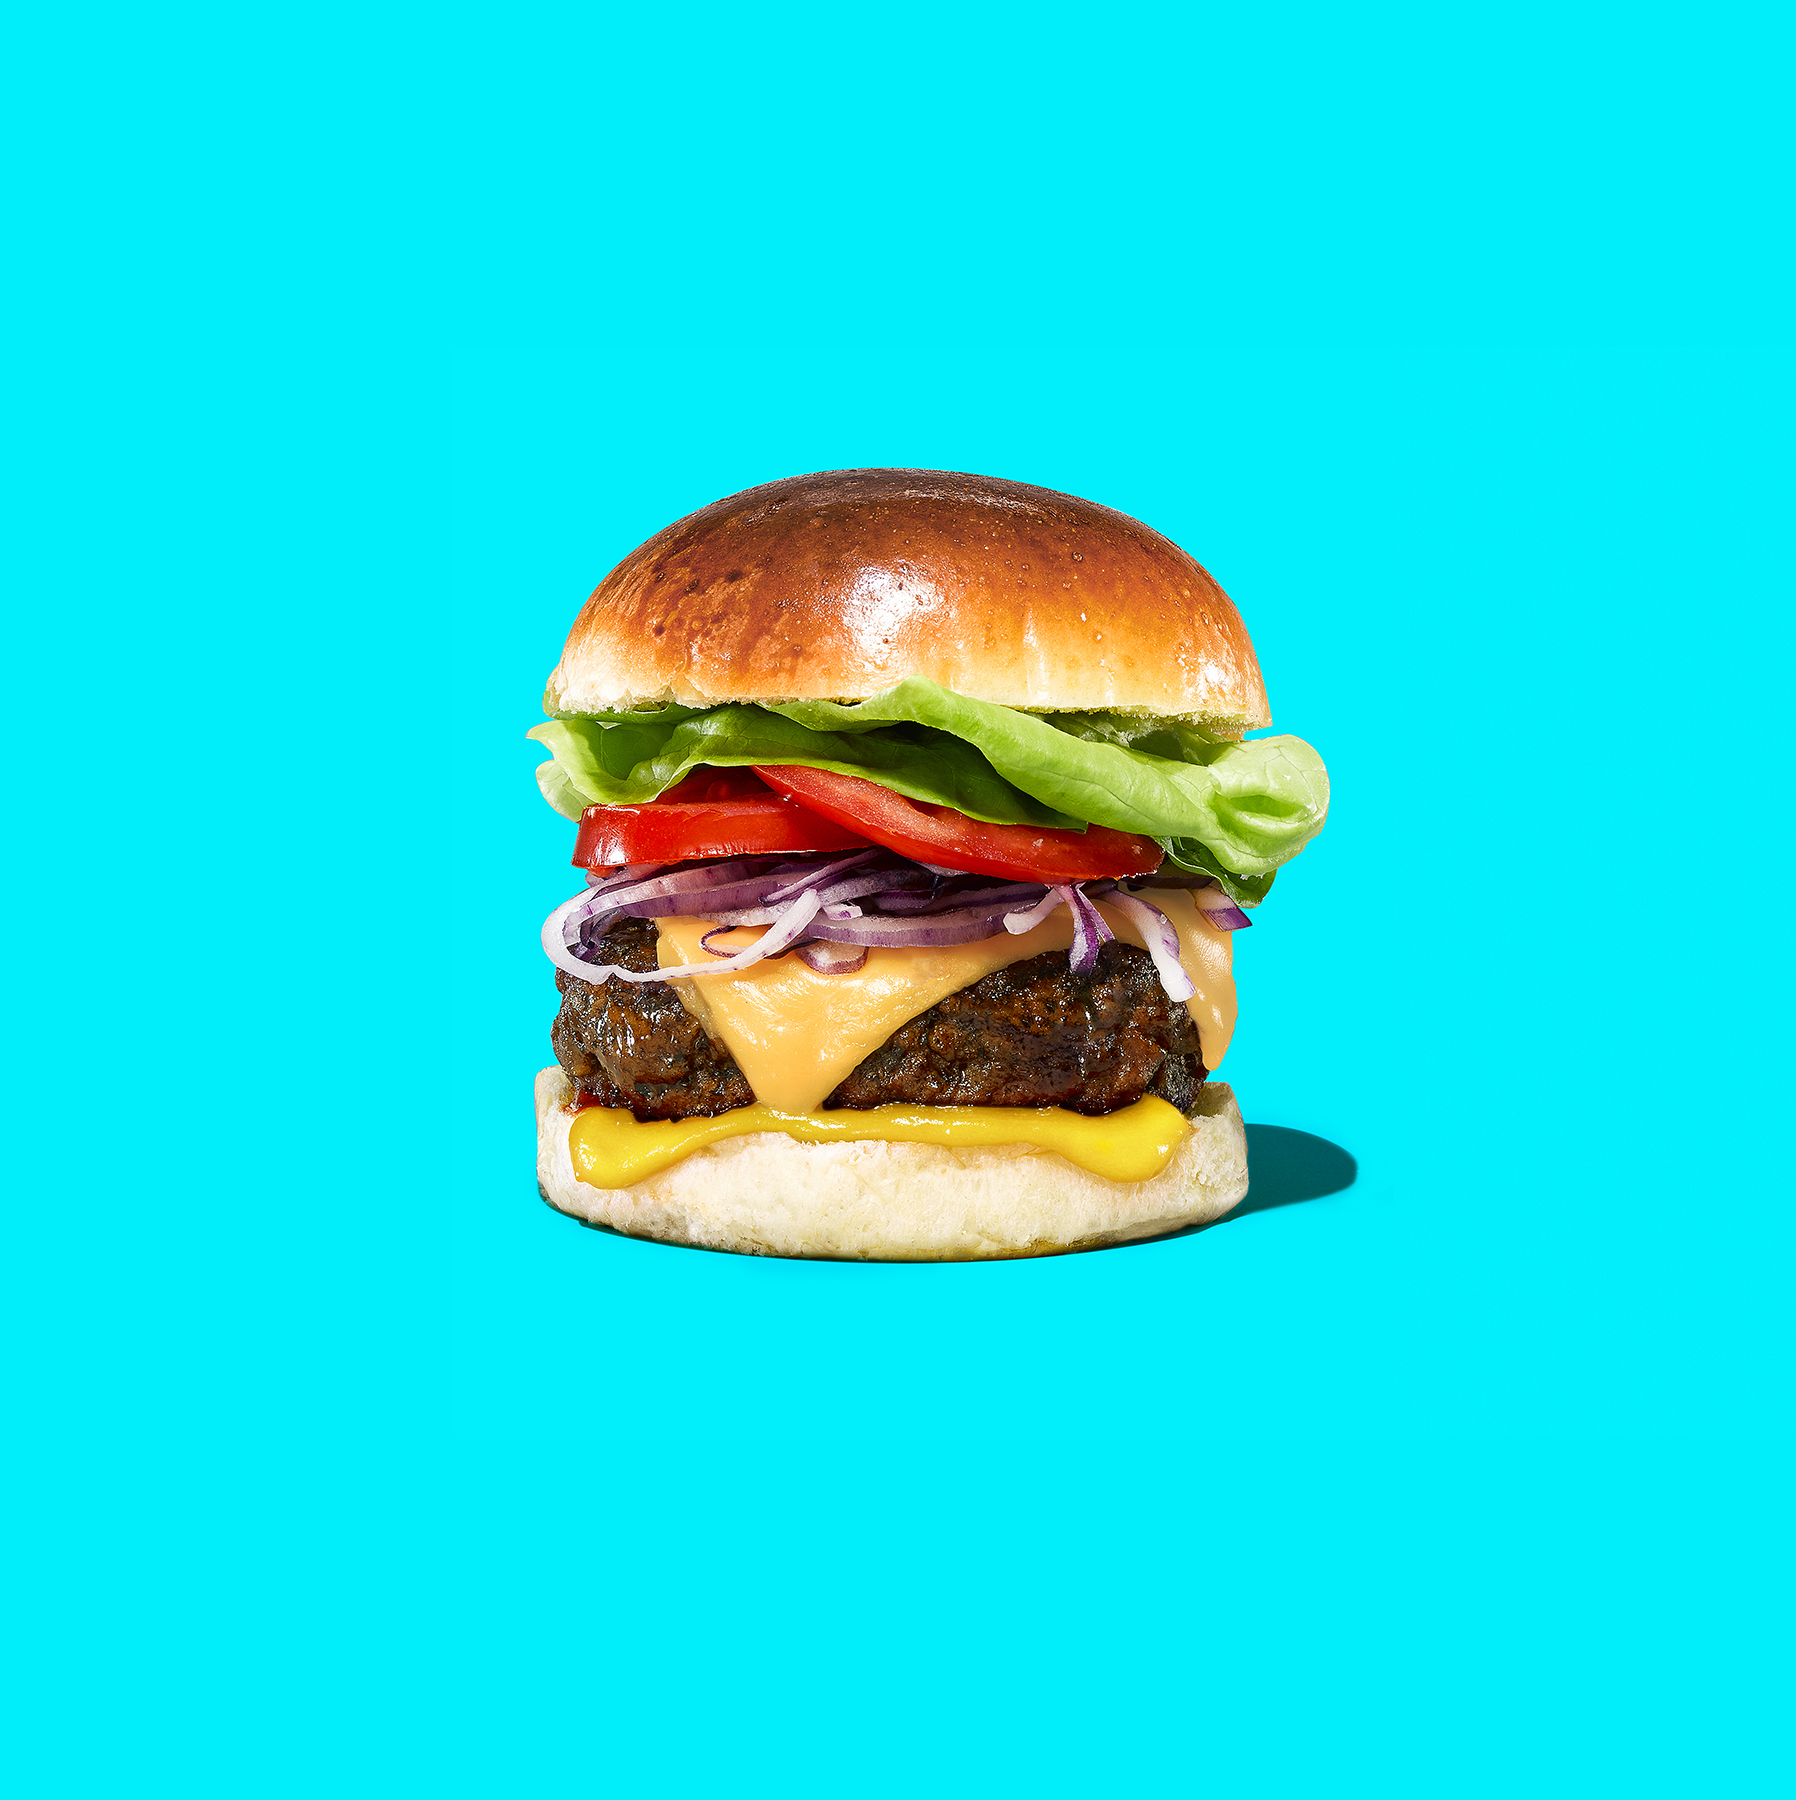 Ultimate burger on blue background